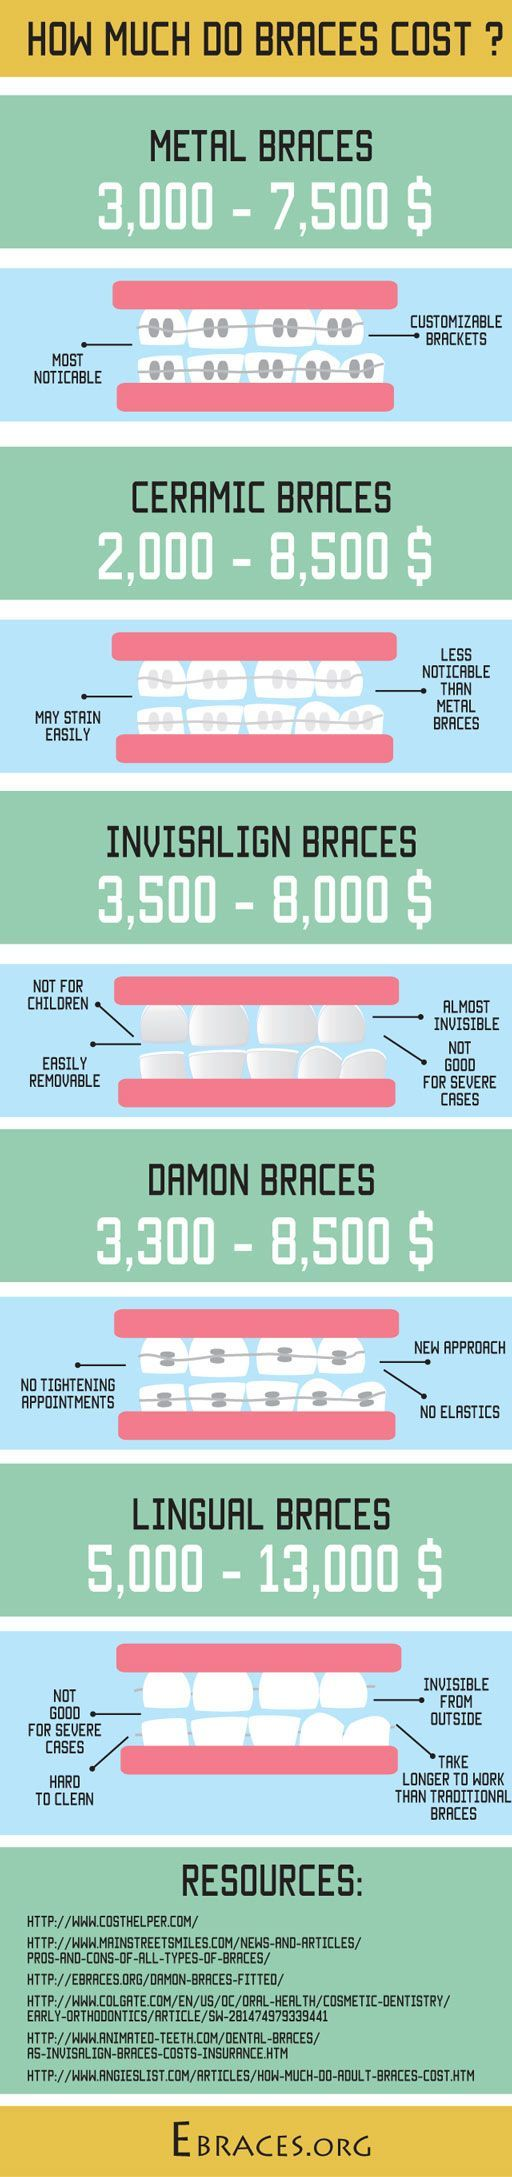 How Much Do Braces Cost? Our In-Depth Investigation